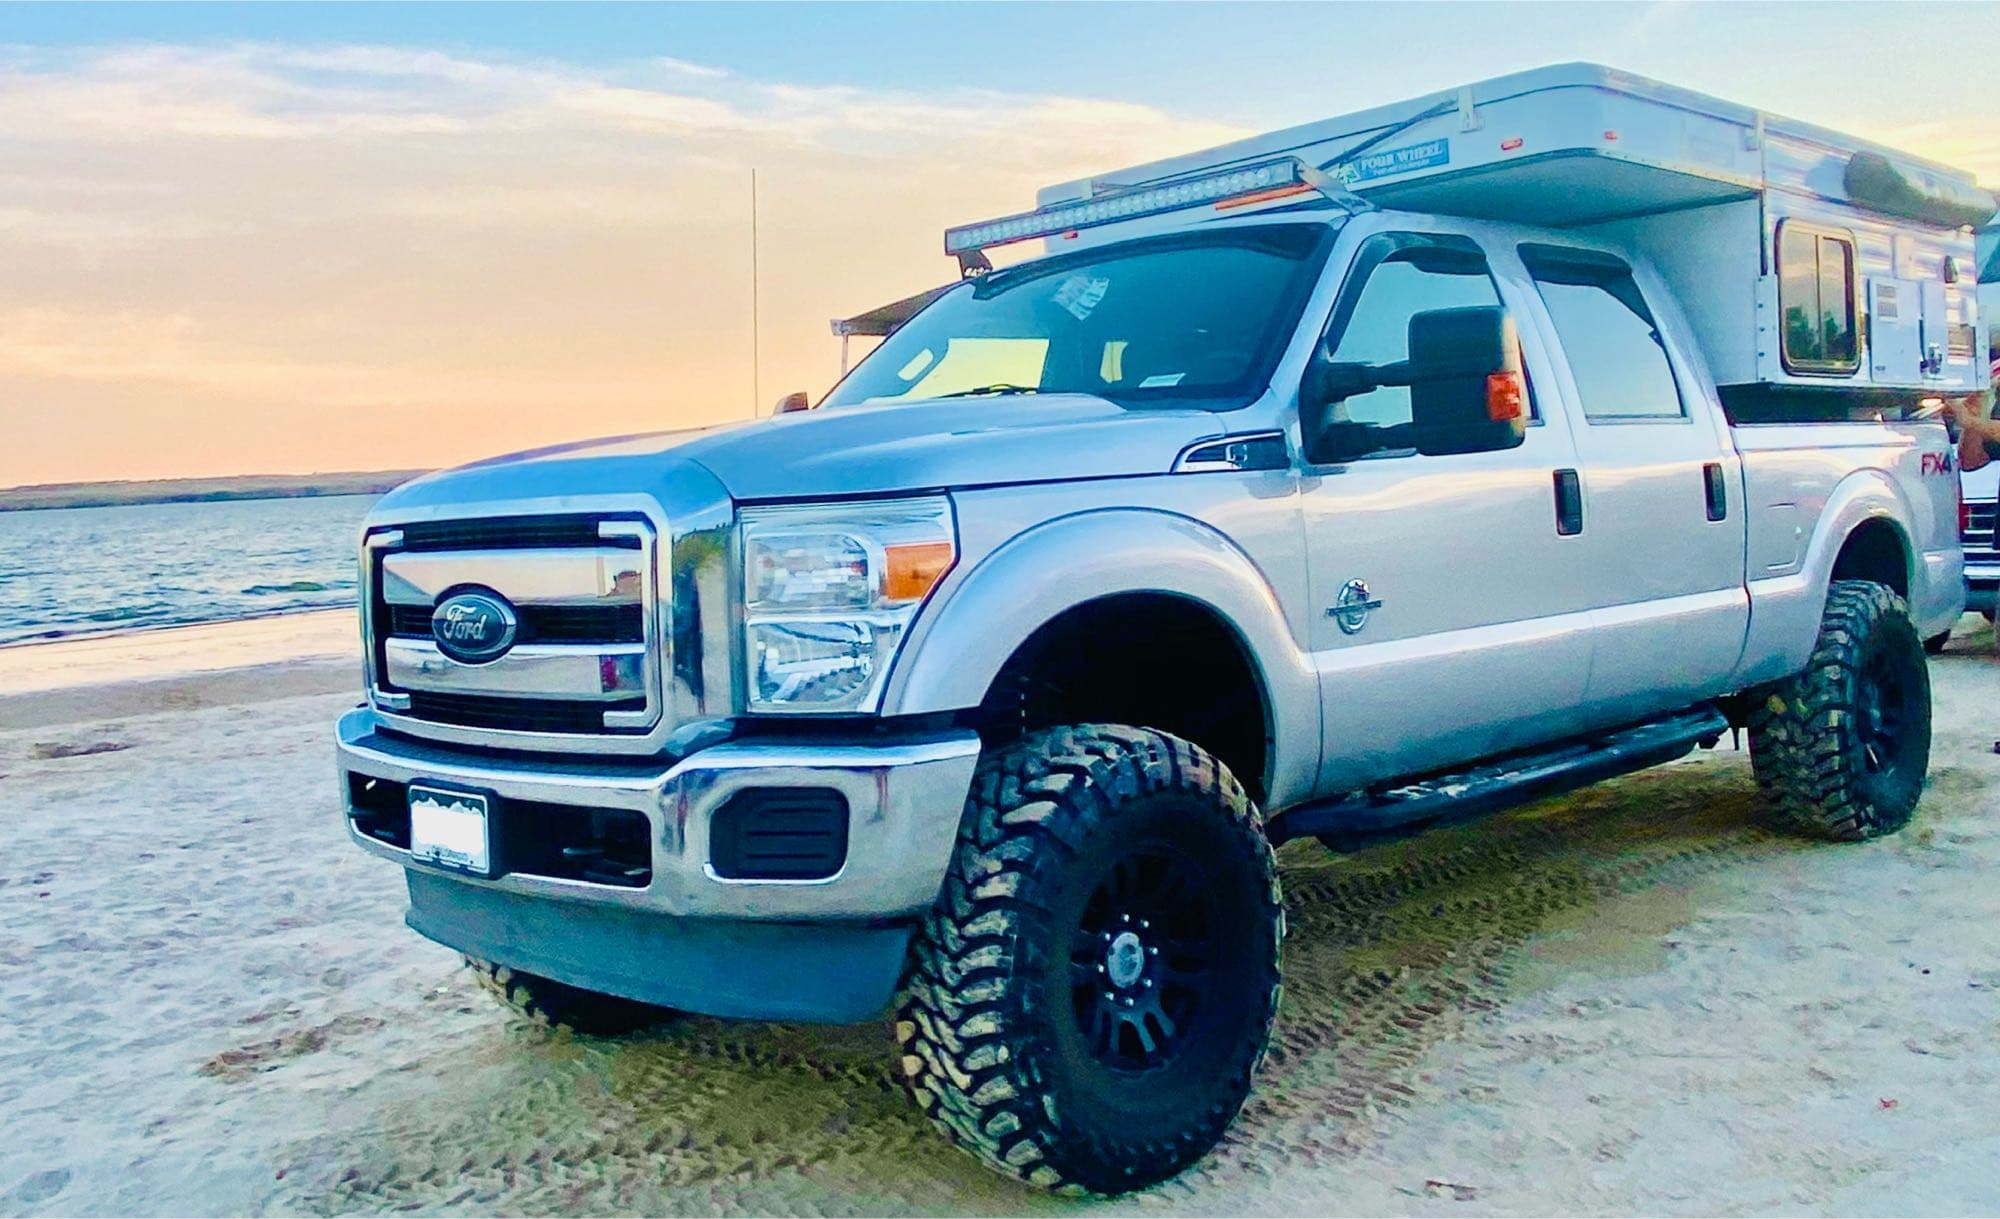 On the beach. Four Wheel Campers Hawk 2019